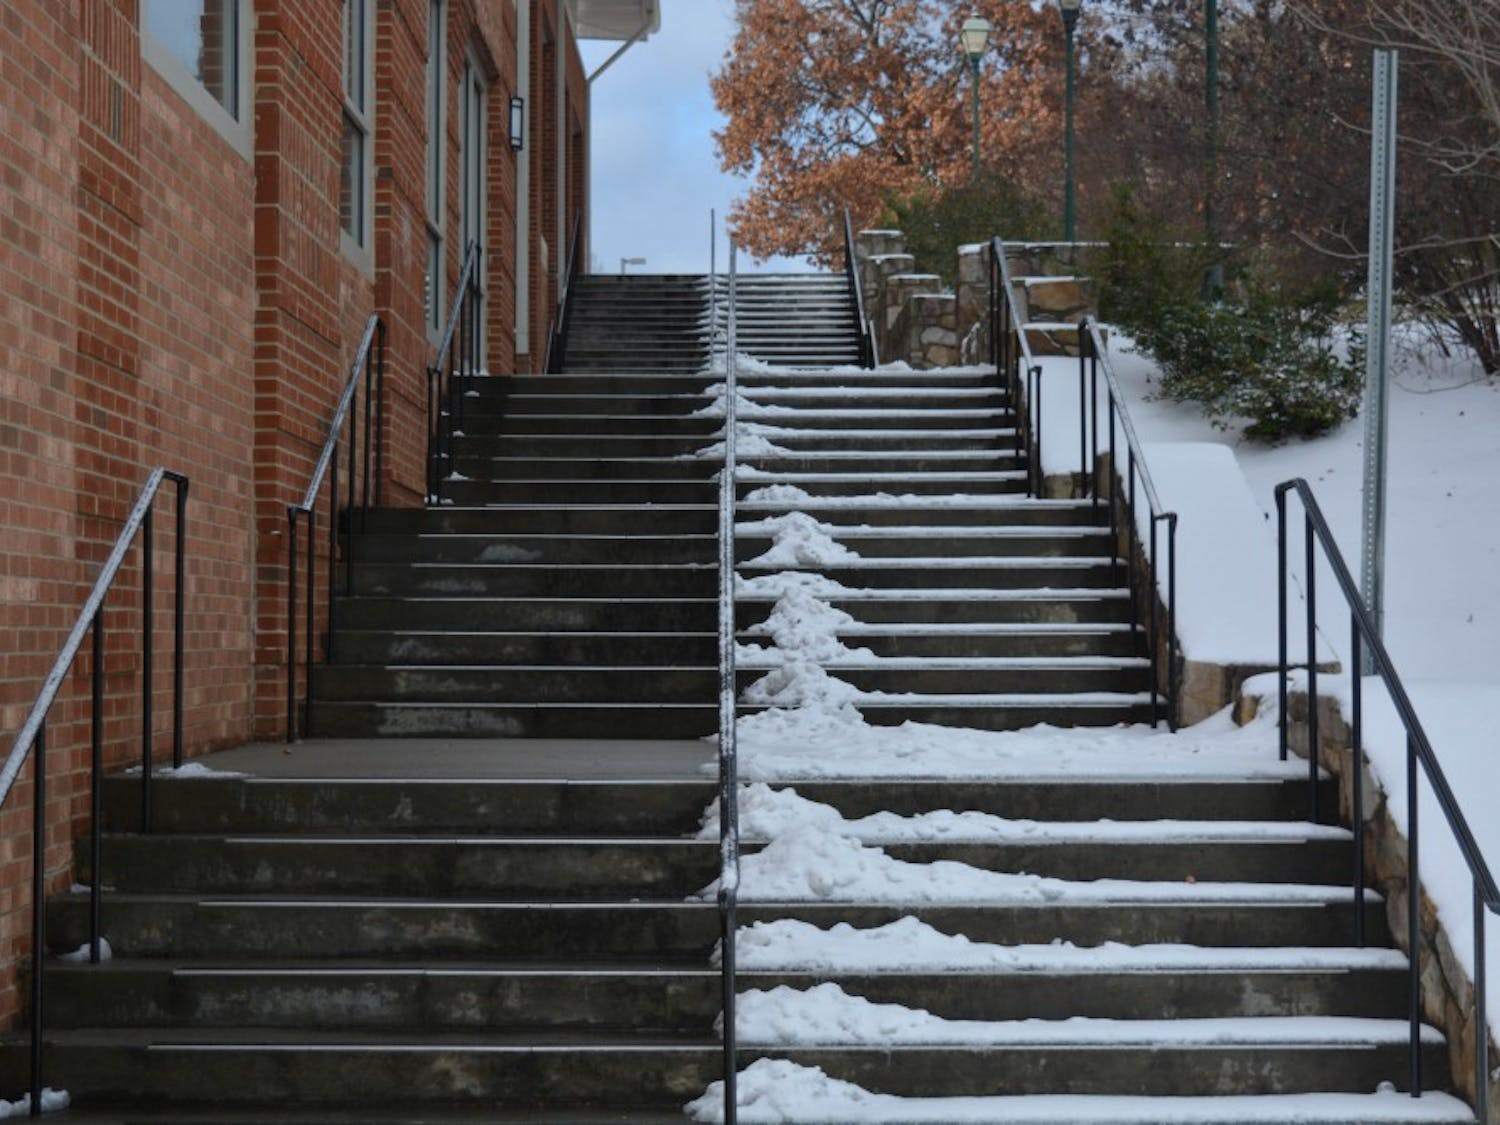 Workers spent the afternoon clearing pathways across campus to make it safe for walking.